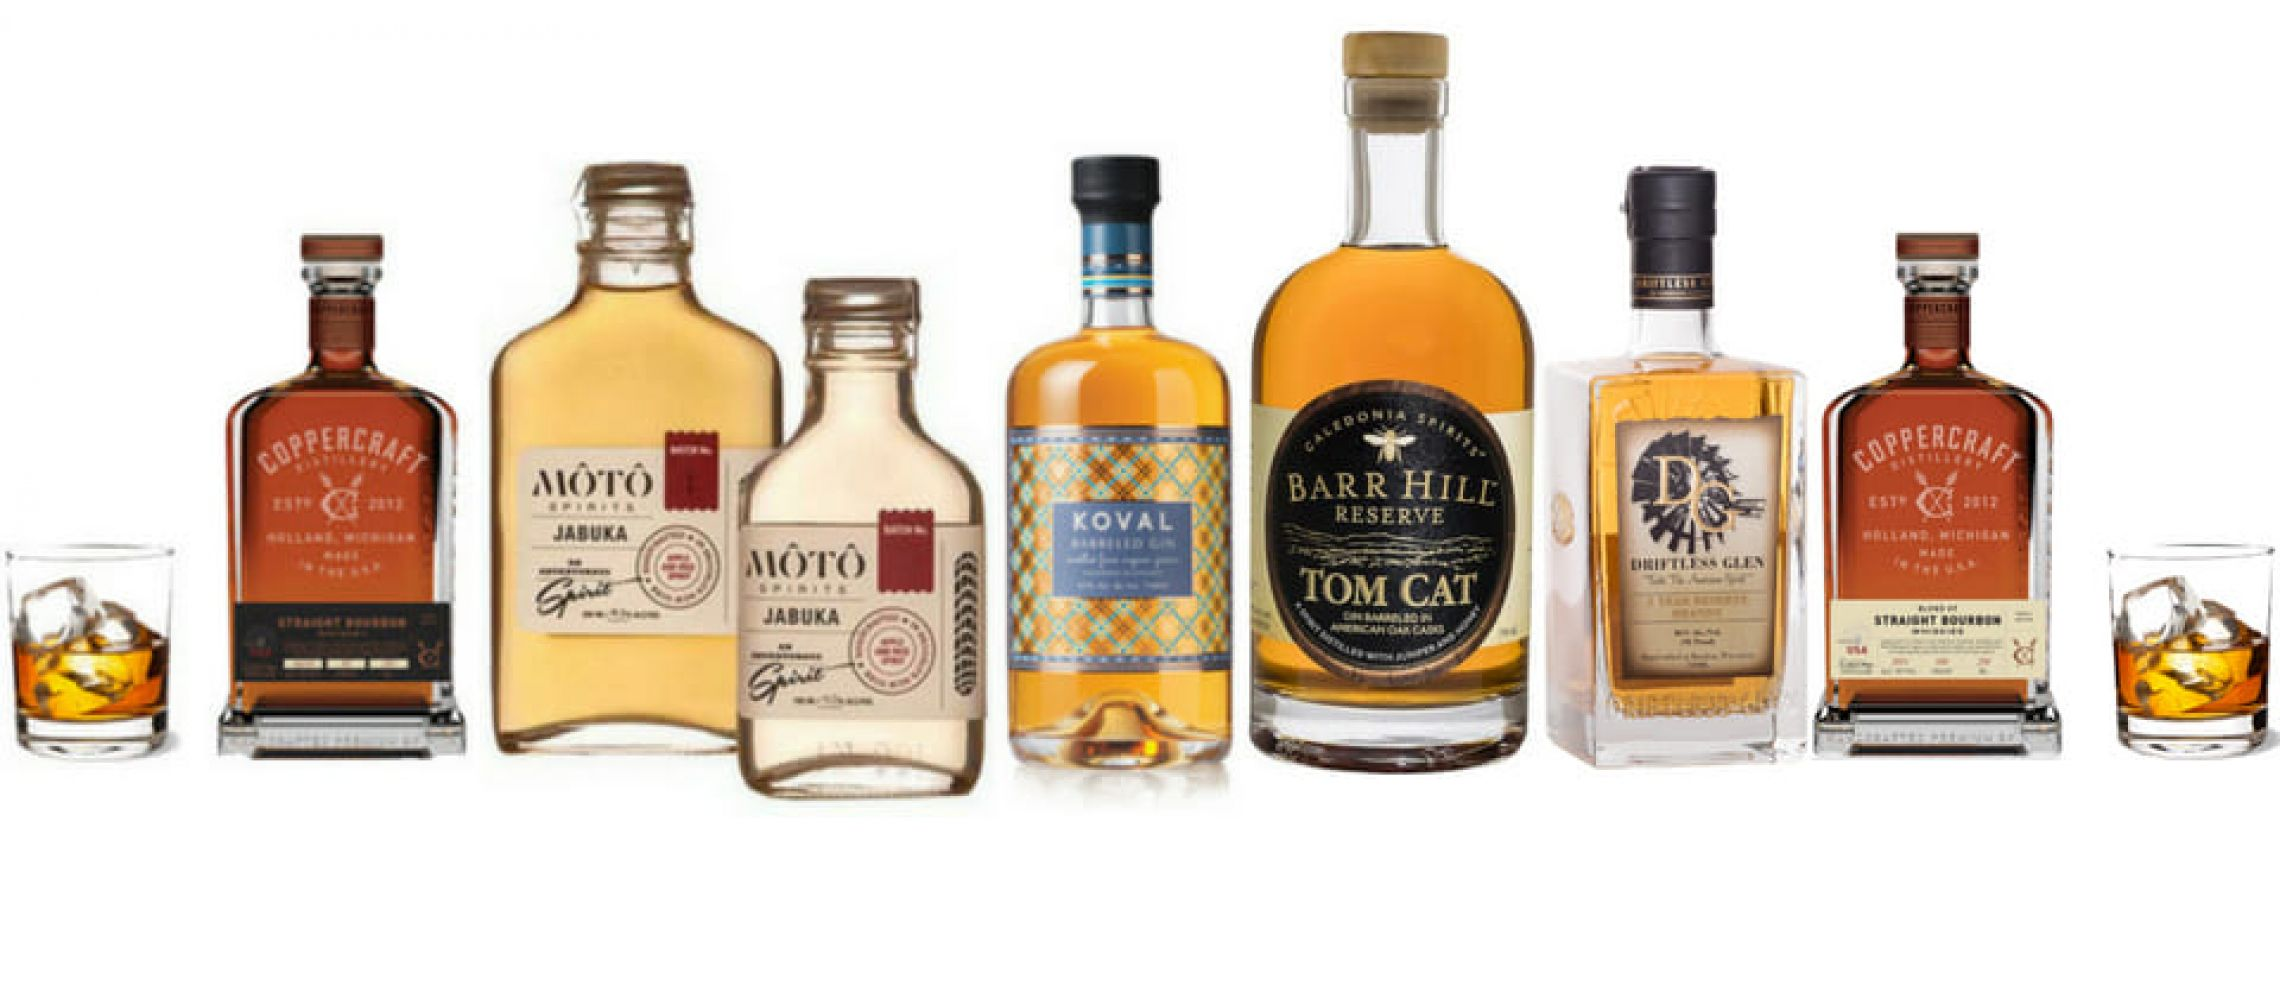 Photo for: Top 10 Spirits Brands of USA You Must Try in 2018